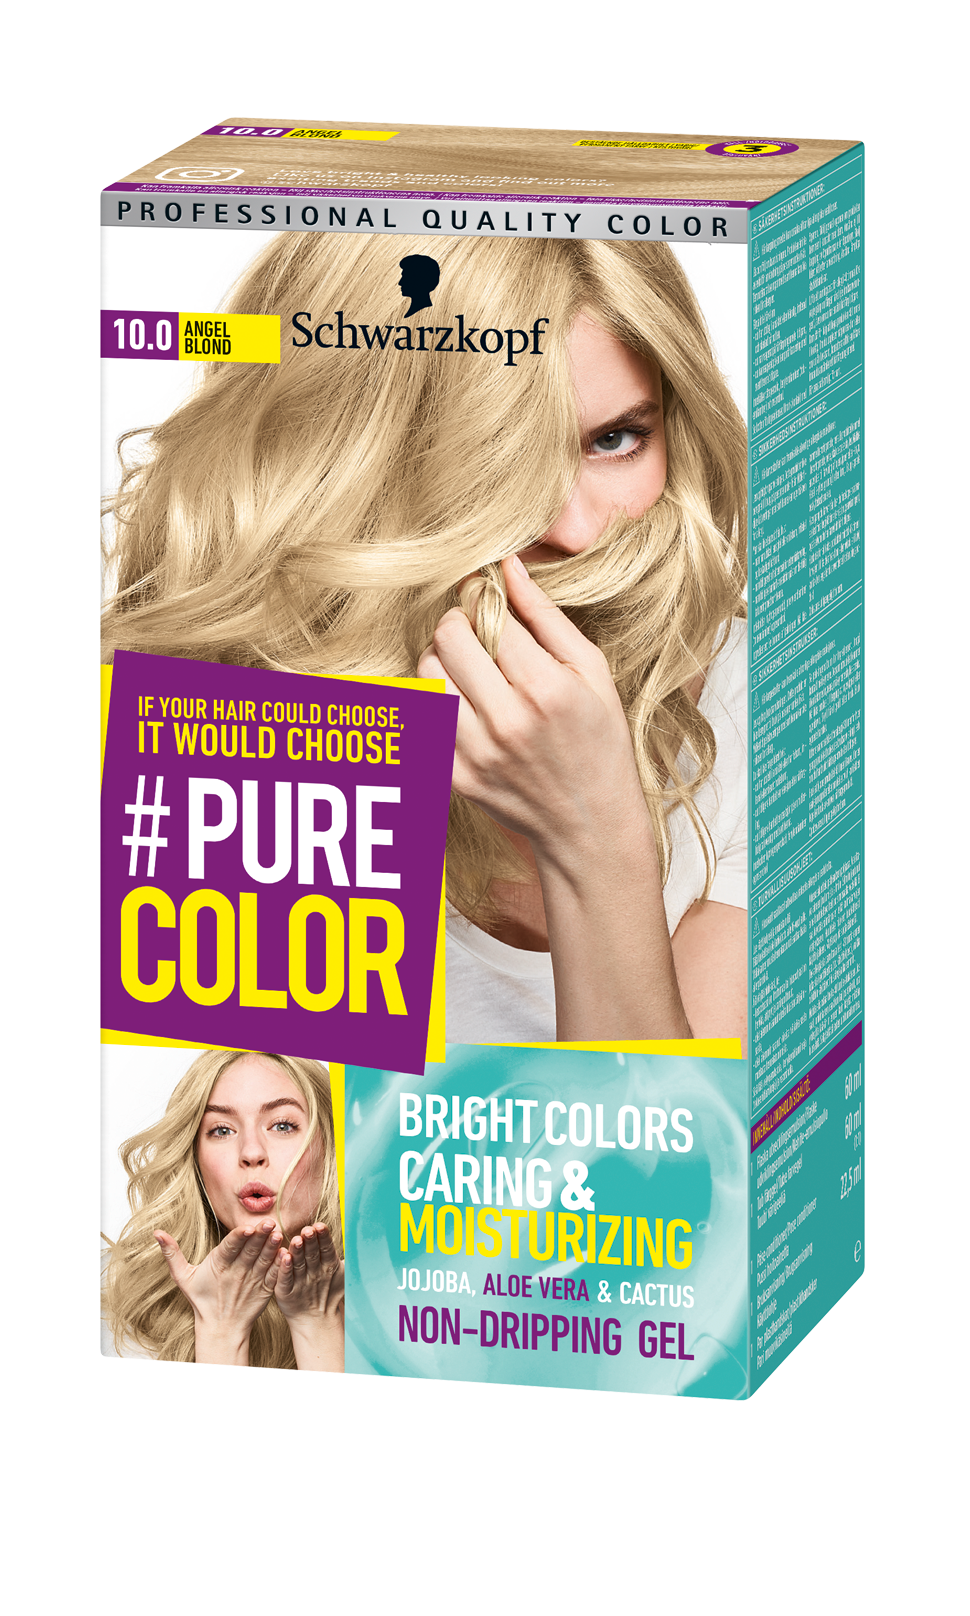 Pure-color-10-0-angel-blond